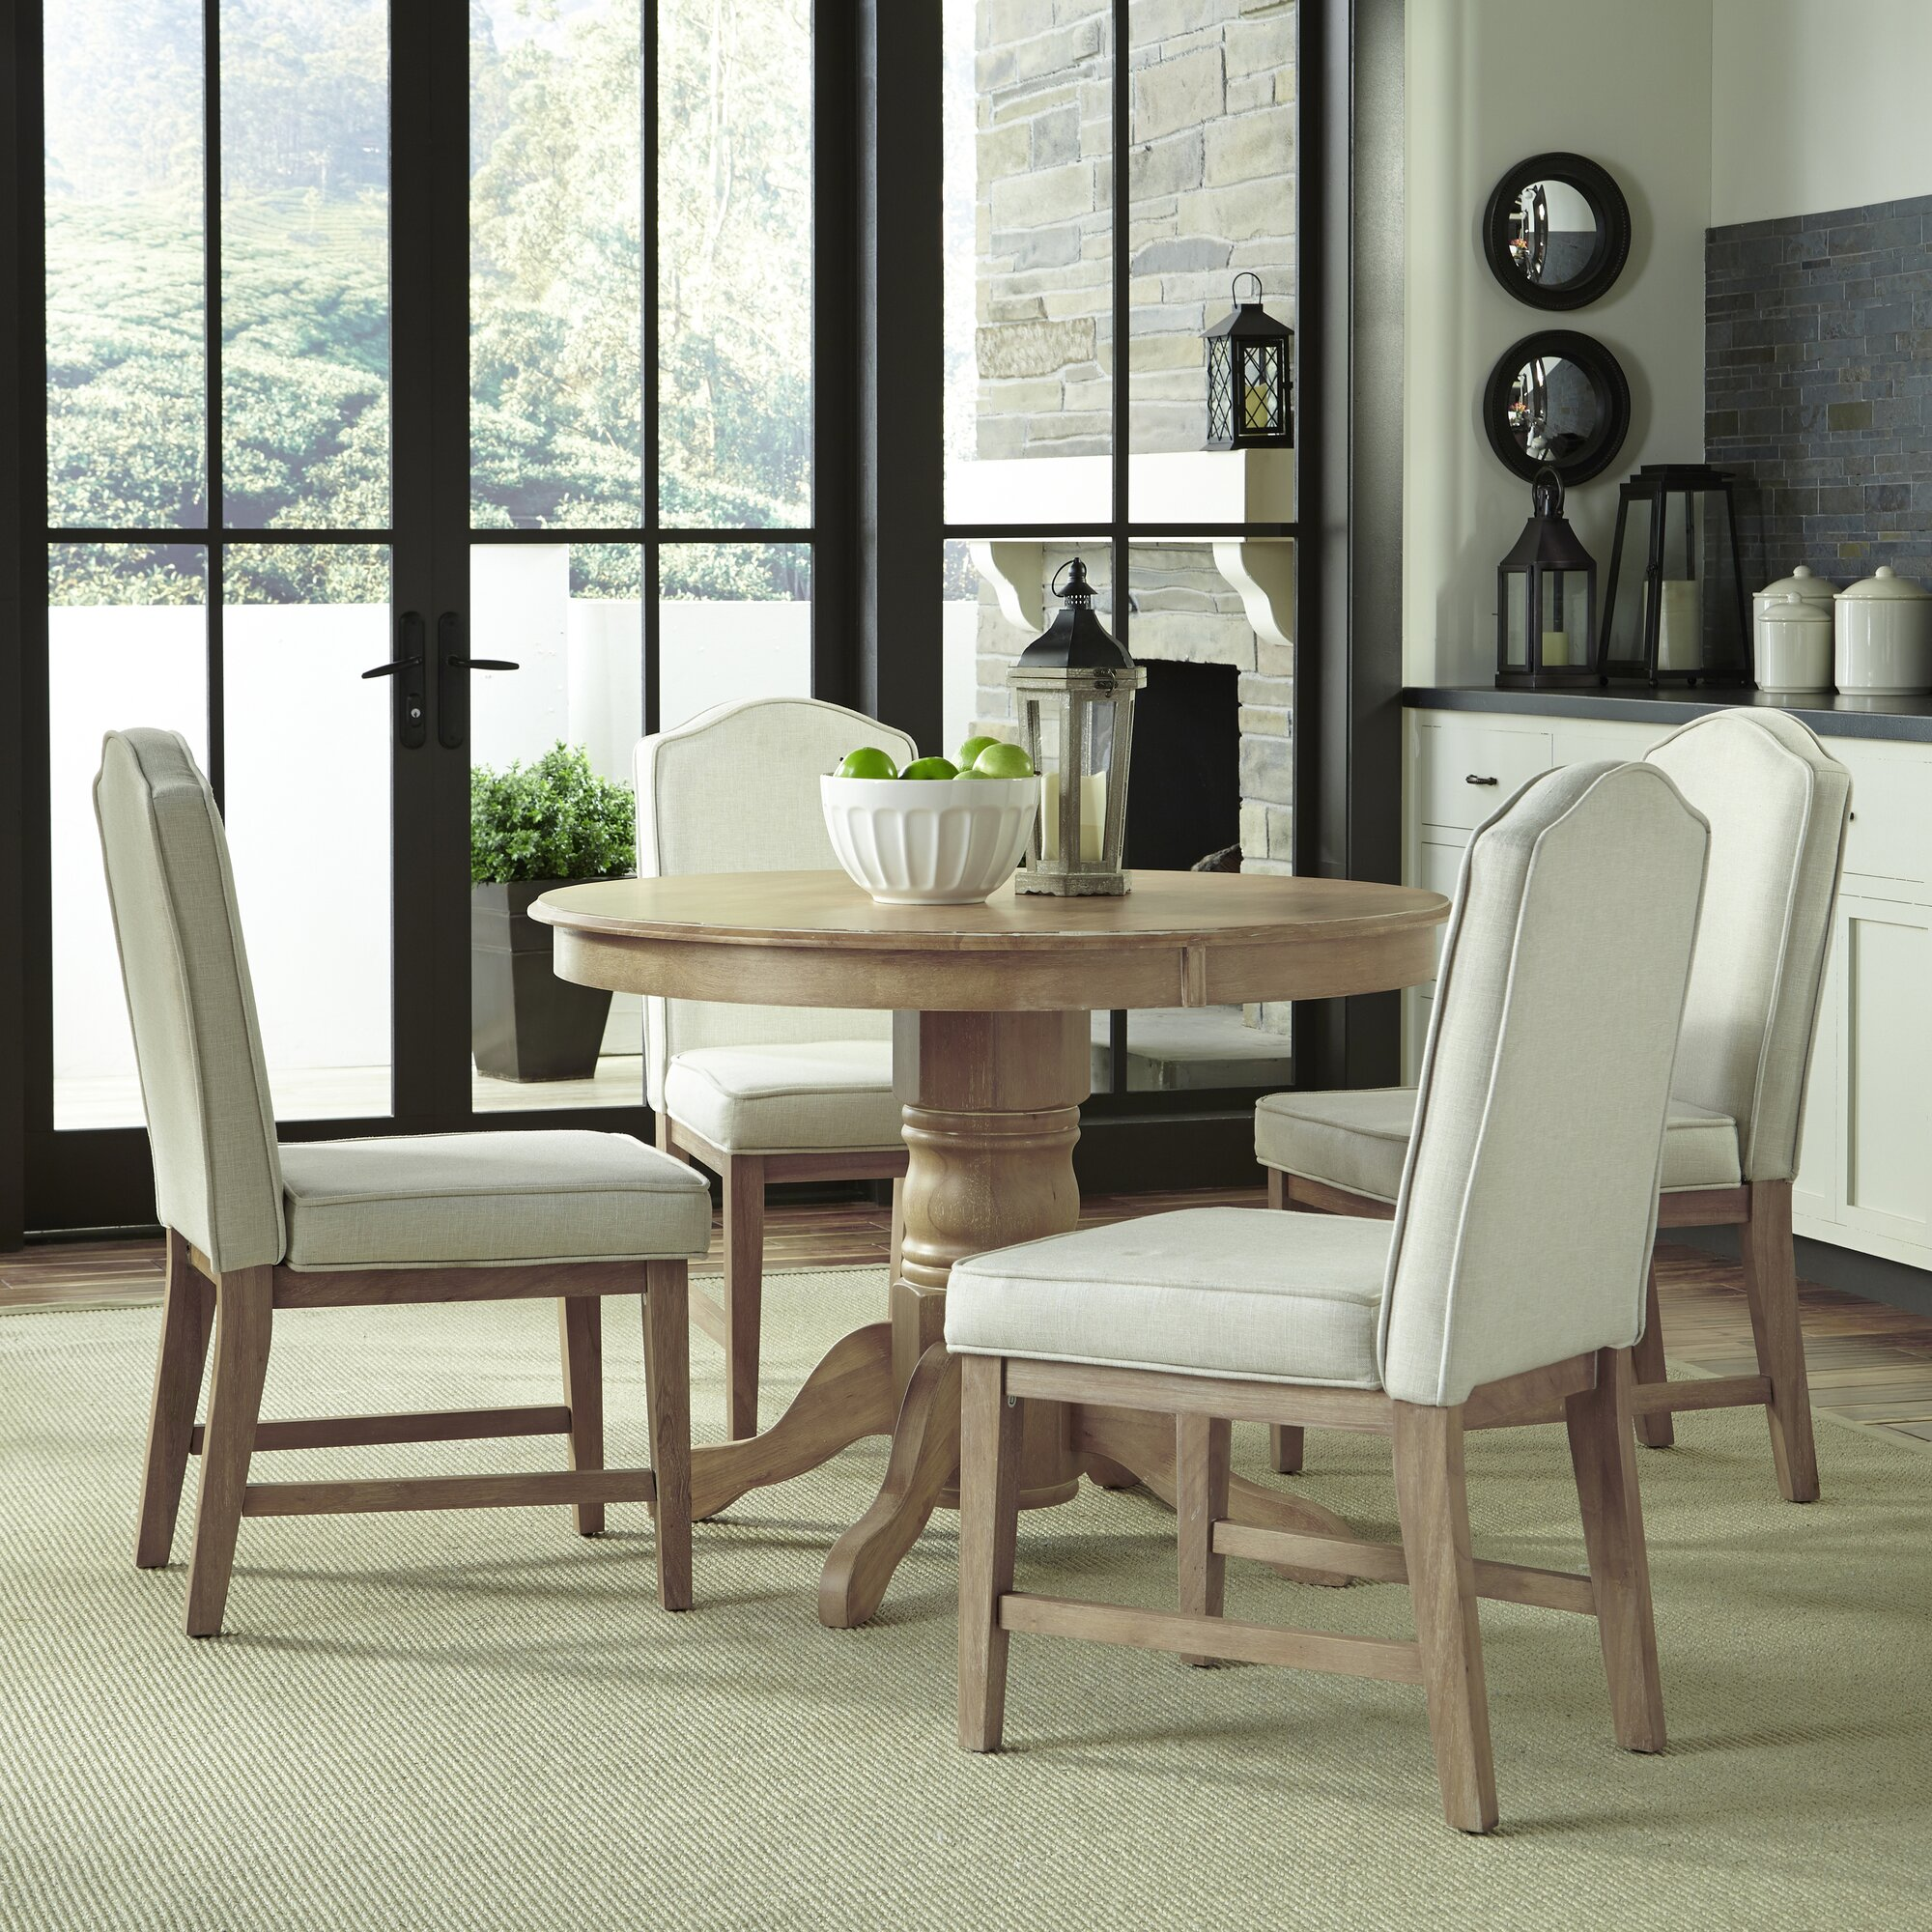 Home styles 5 piece dining set reviews wayfair for 2 piece dining room set